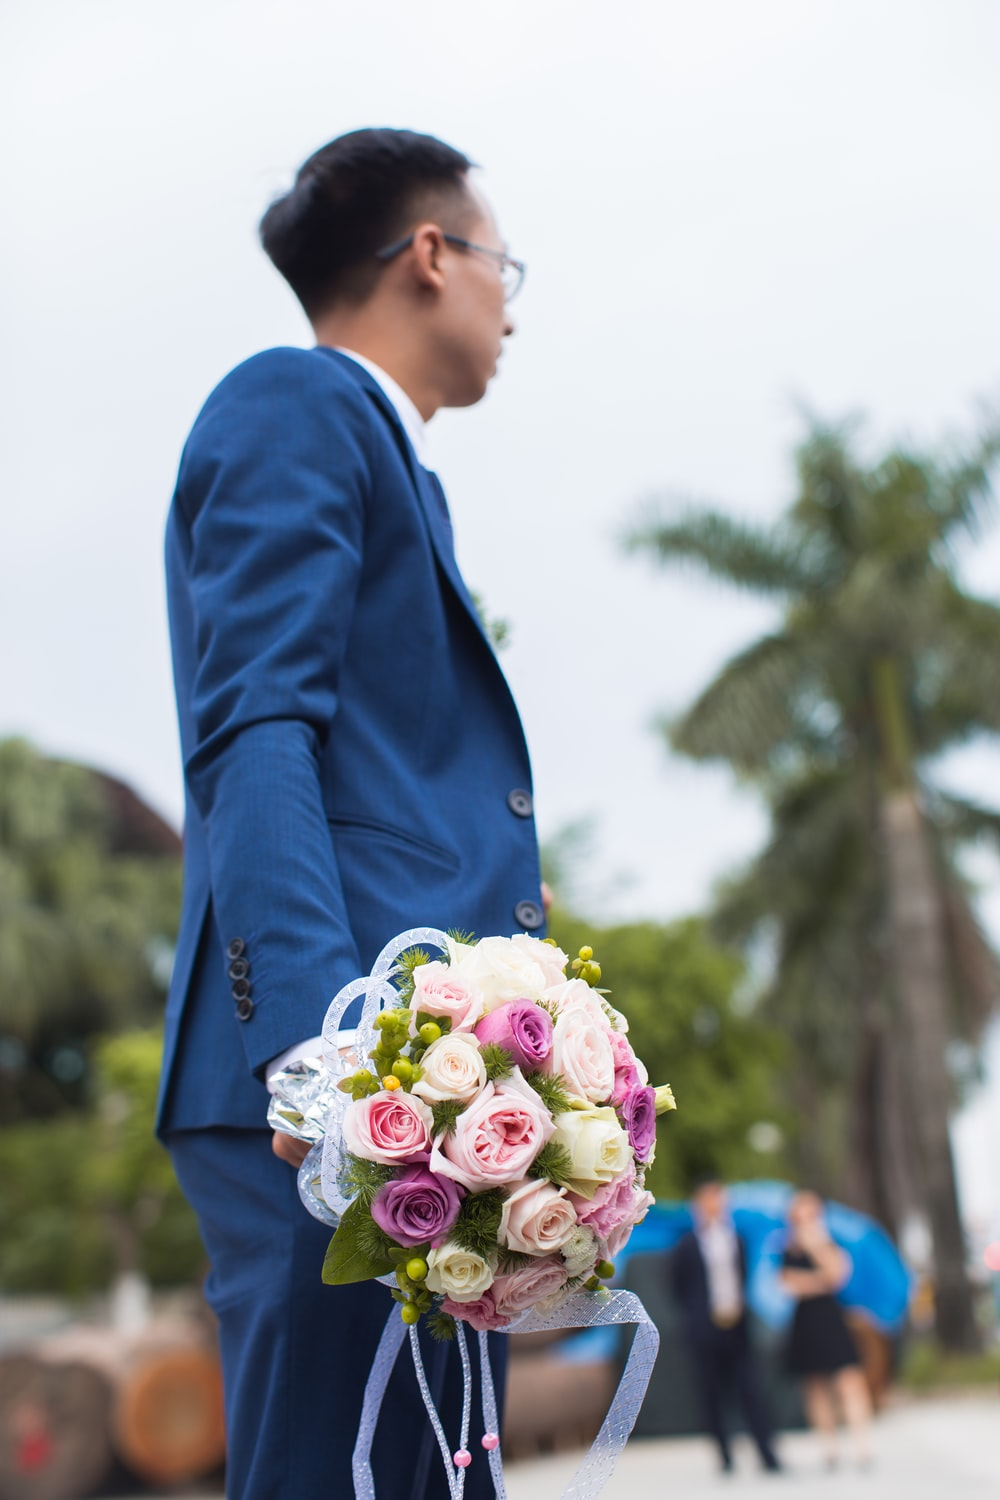 man holding bouquet of flower